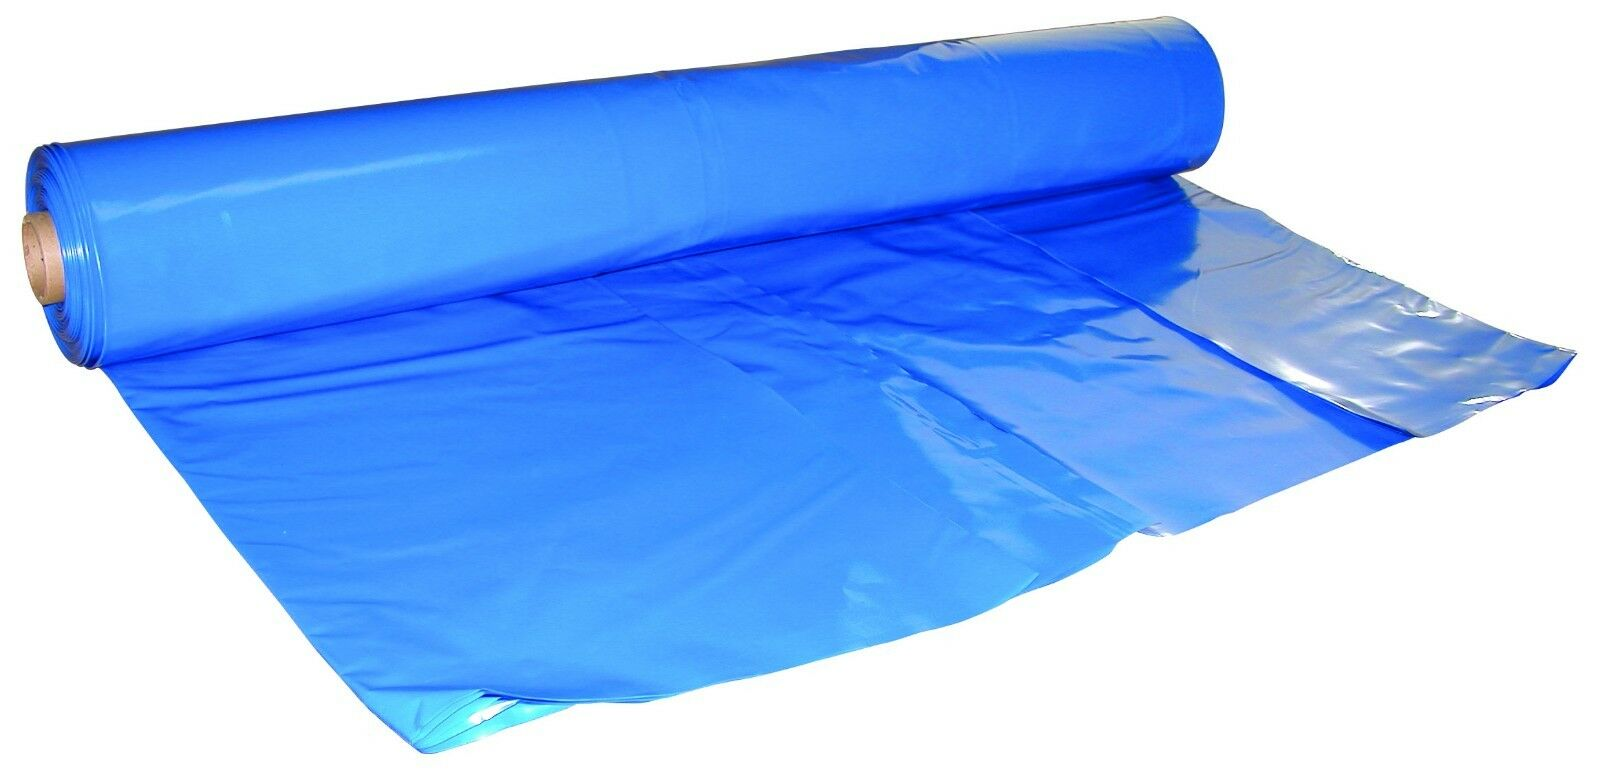 14 ft. x 213  ft. bluee, 7 Mil Shrink Wrap - DS-147213B  hot sports